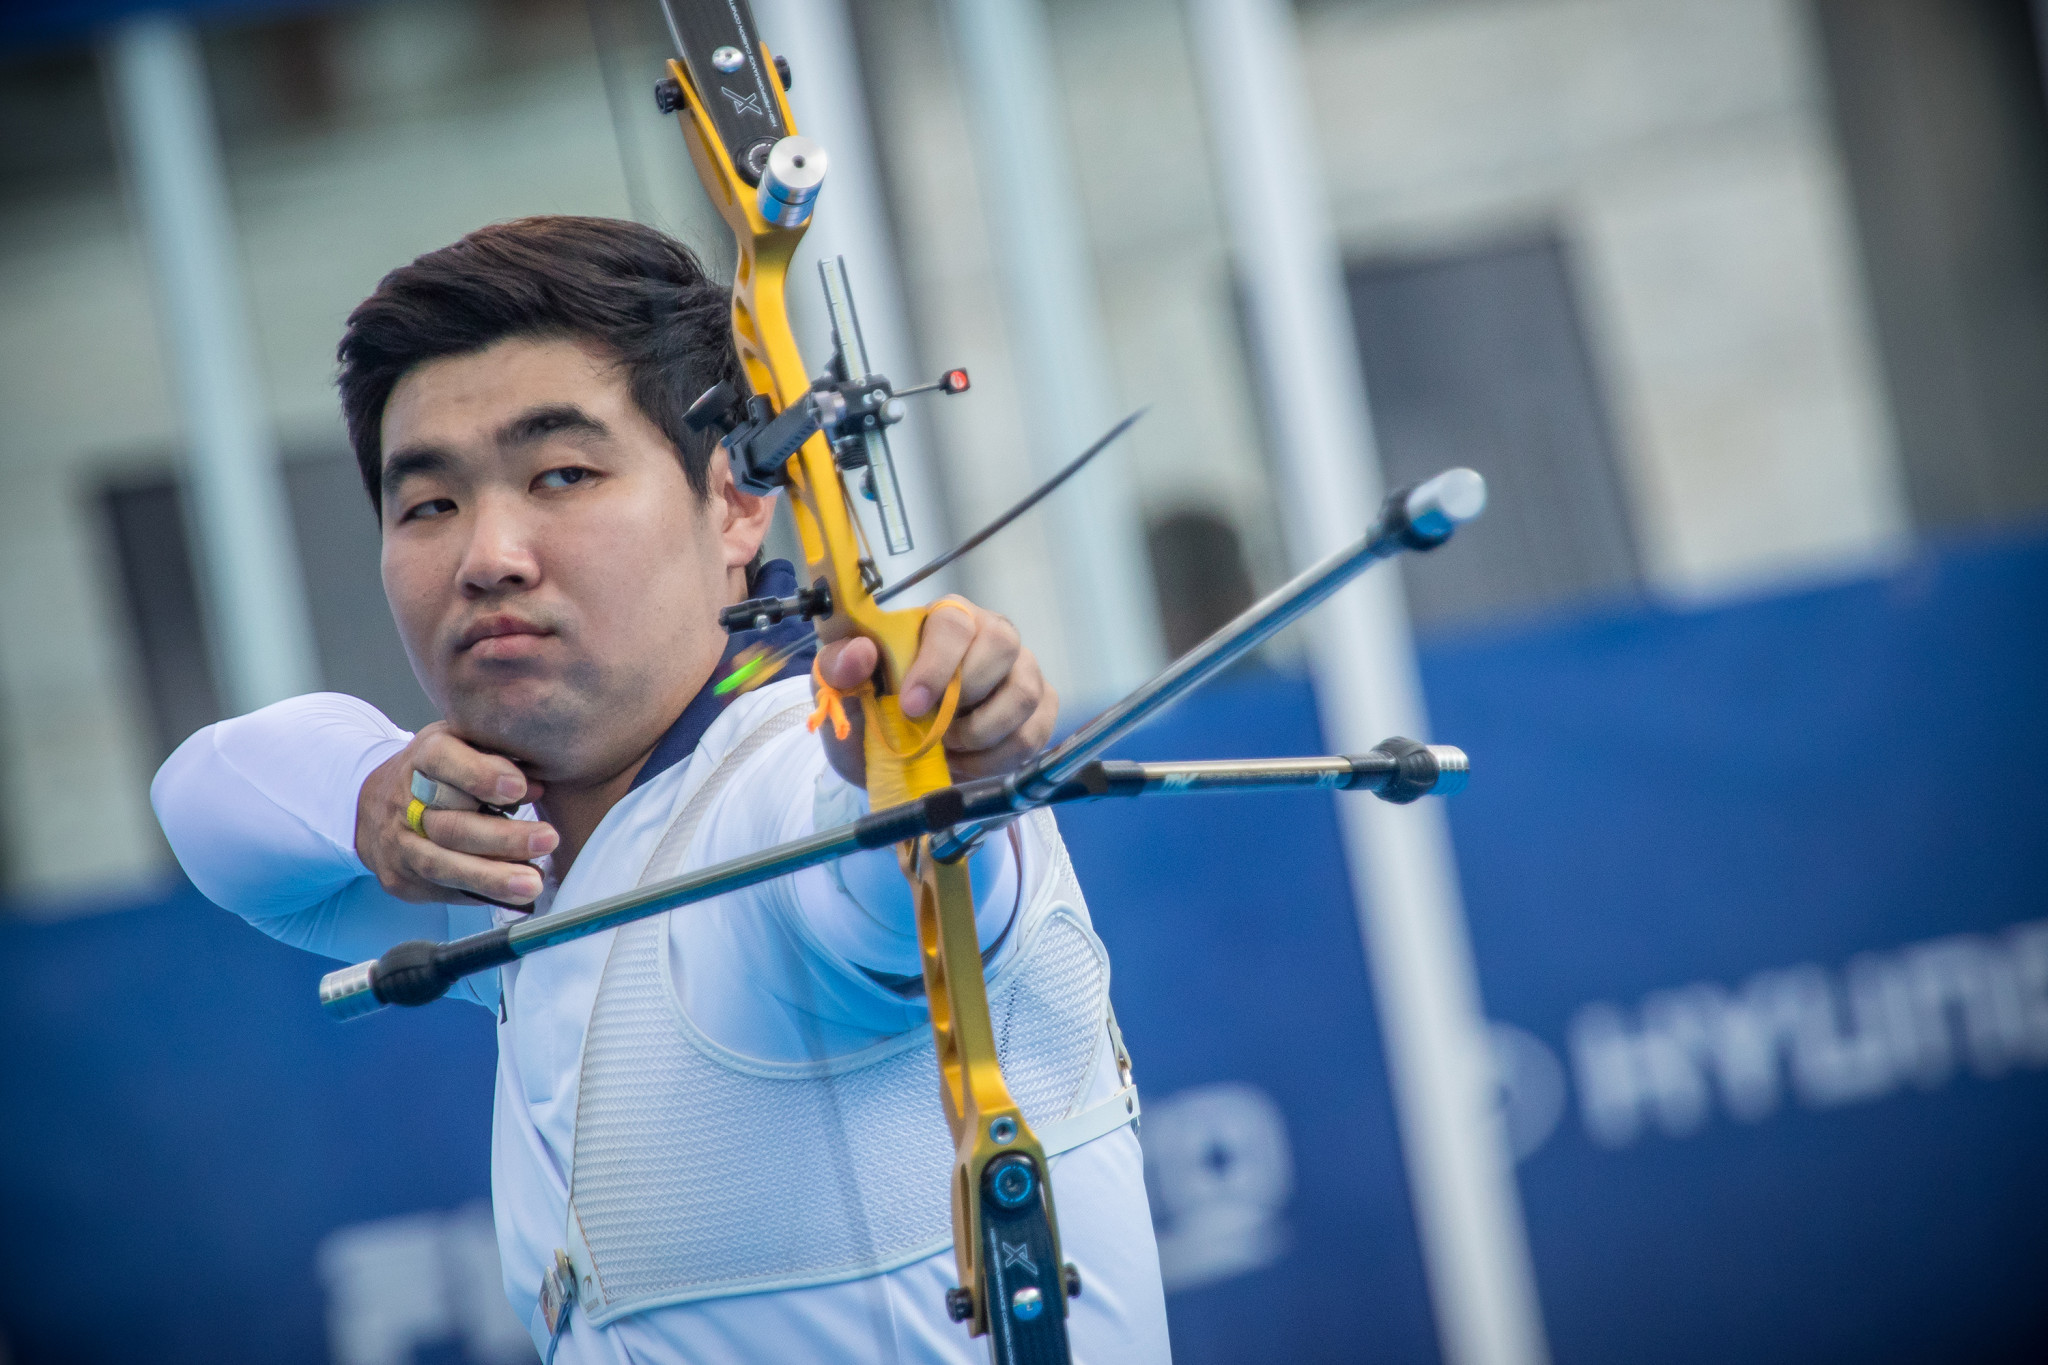 South Korea's Im Dong Hyun claimed the men's individual recurve title on the final day of action at the World Archery Championships in Mexico City ©Getty Images